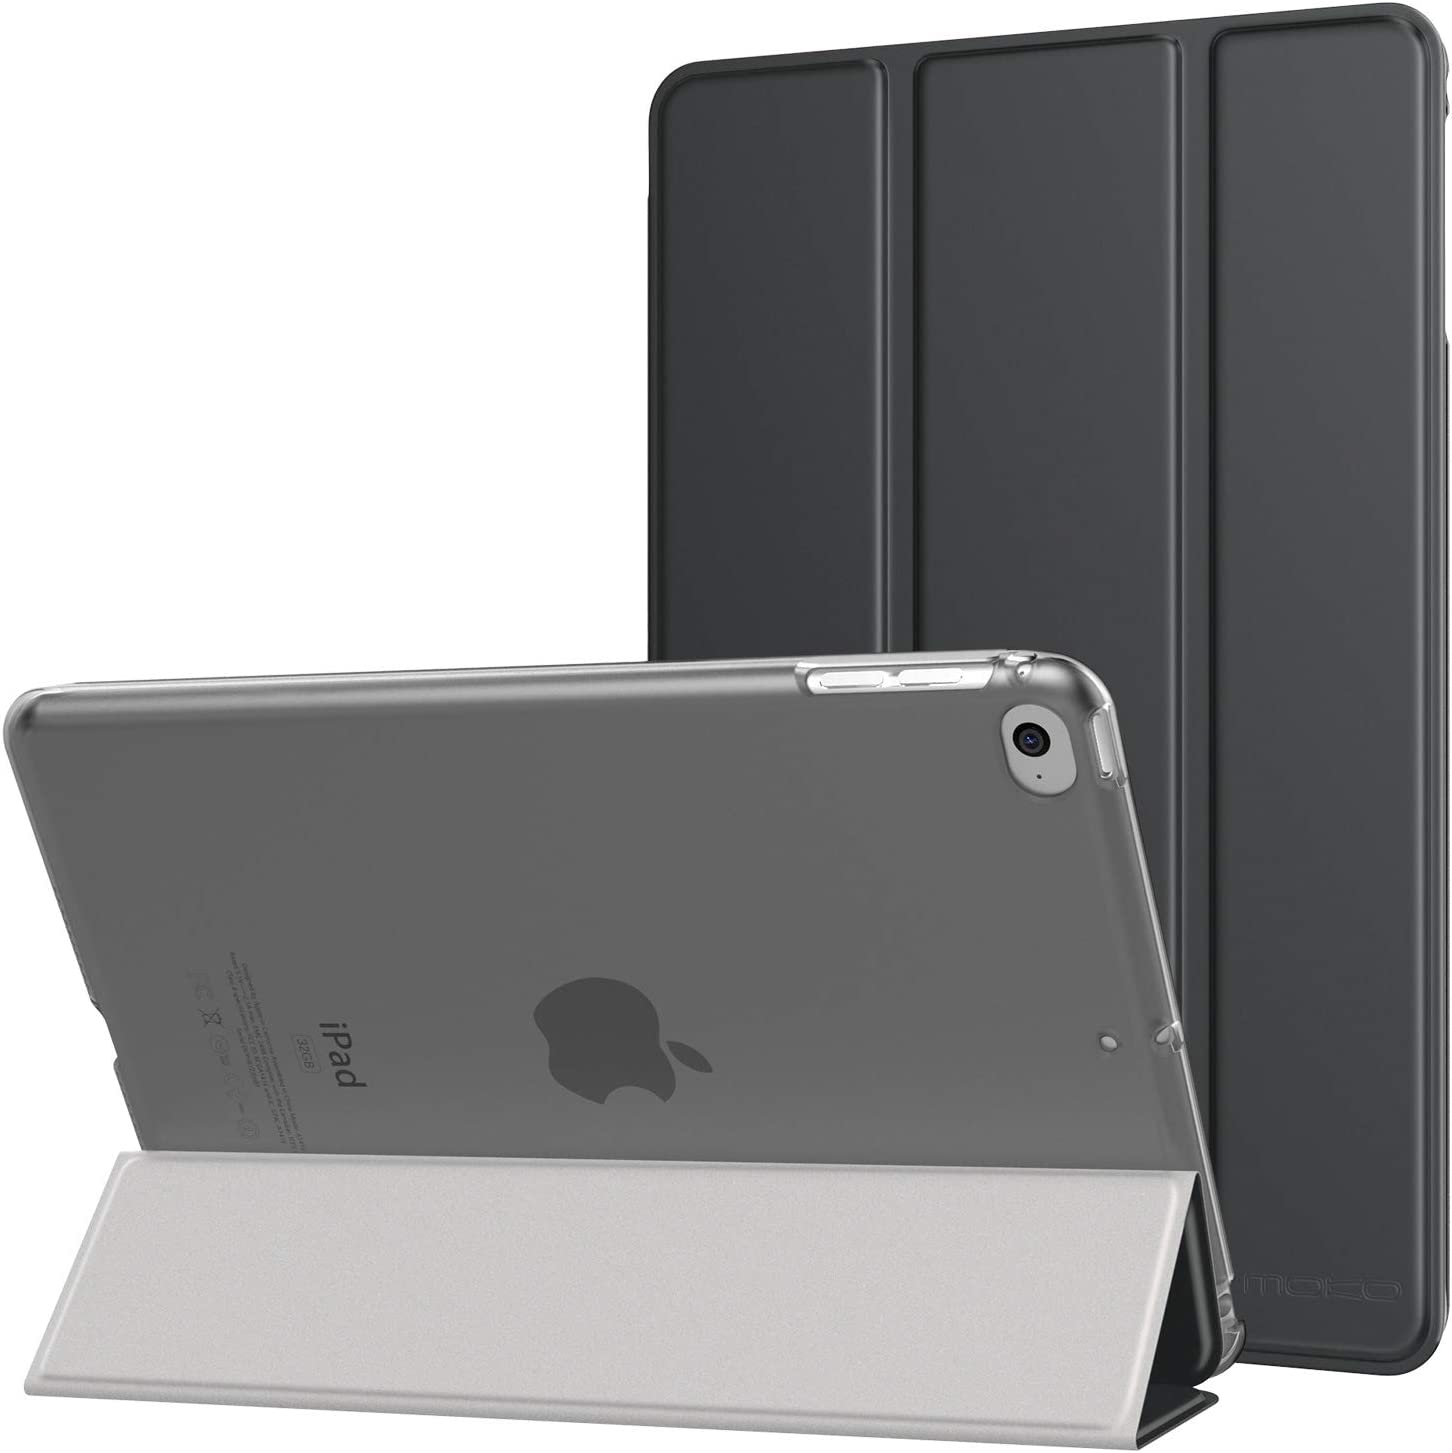 MoKo Case Fit iPad Mini 4 - Slim Lightweight Smart Shell Stand Cover with Translucent Frosted Back Protector Fit iPad Mini 4 7.9 inch 2015 Release Tablet, Space Gray (with Auto Wake/Sleep)